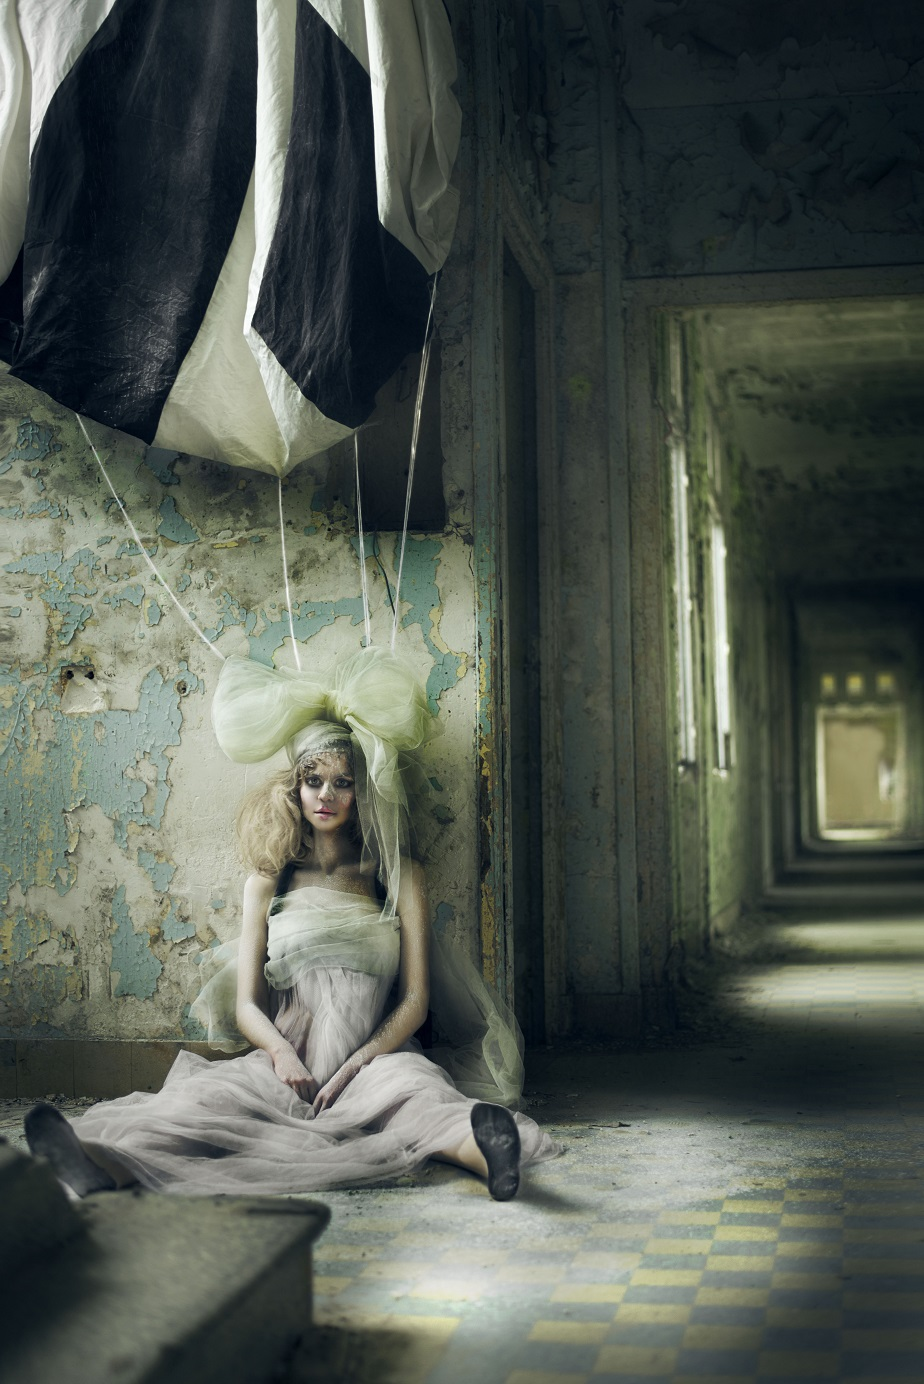 Portrait of a girl dressed like a doll by Wix Photographer Juliette Jourdain